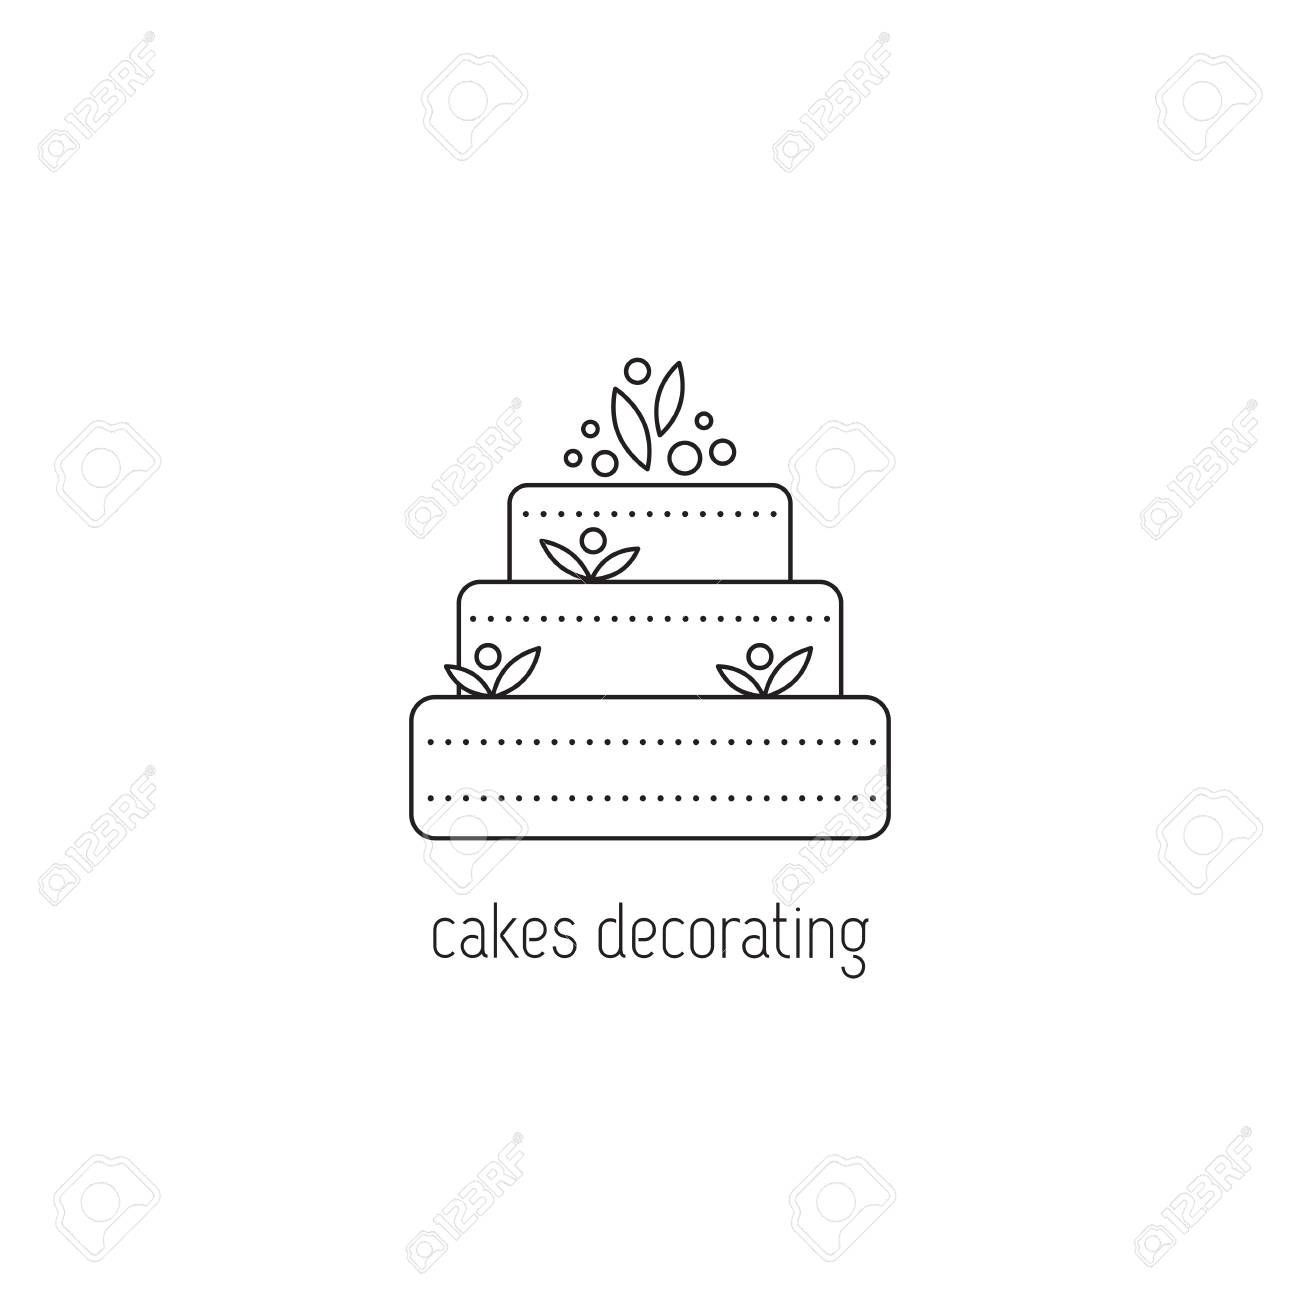 Cakes Decorating Vector Thin Line Icon A Big Cake Black On White Isolated Symbol